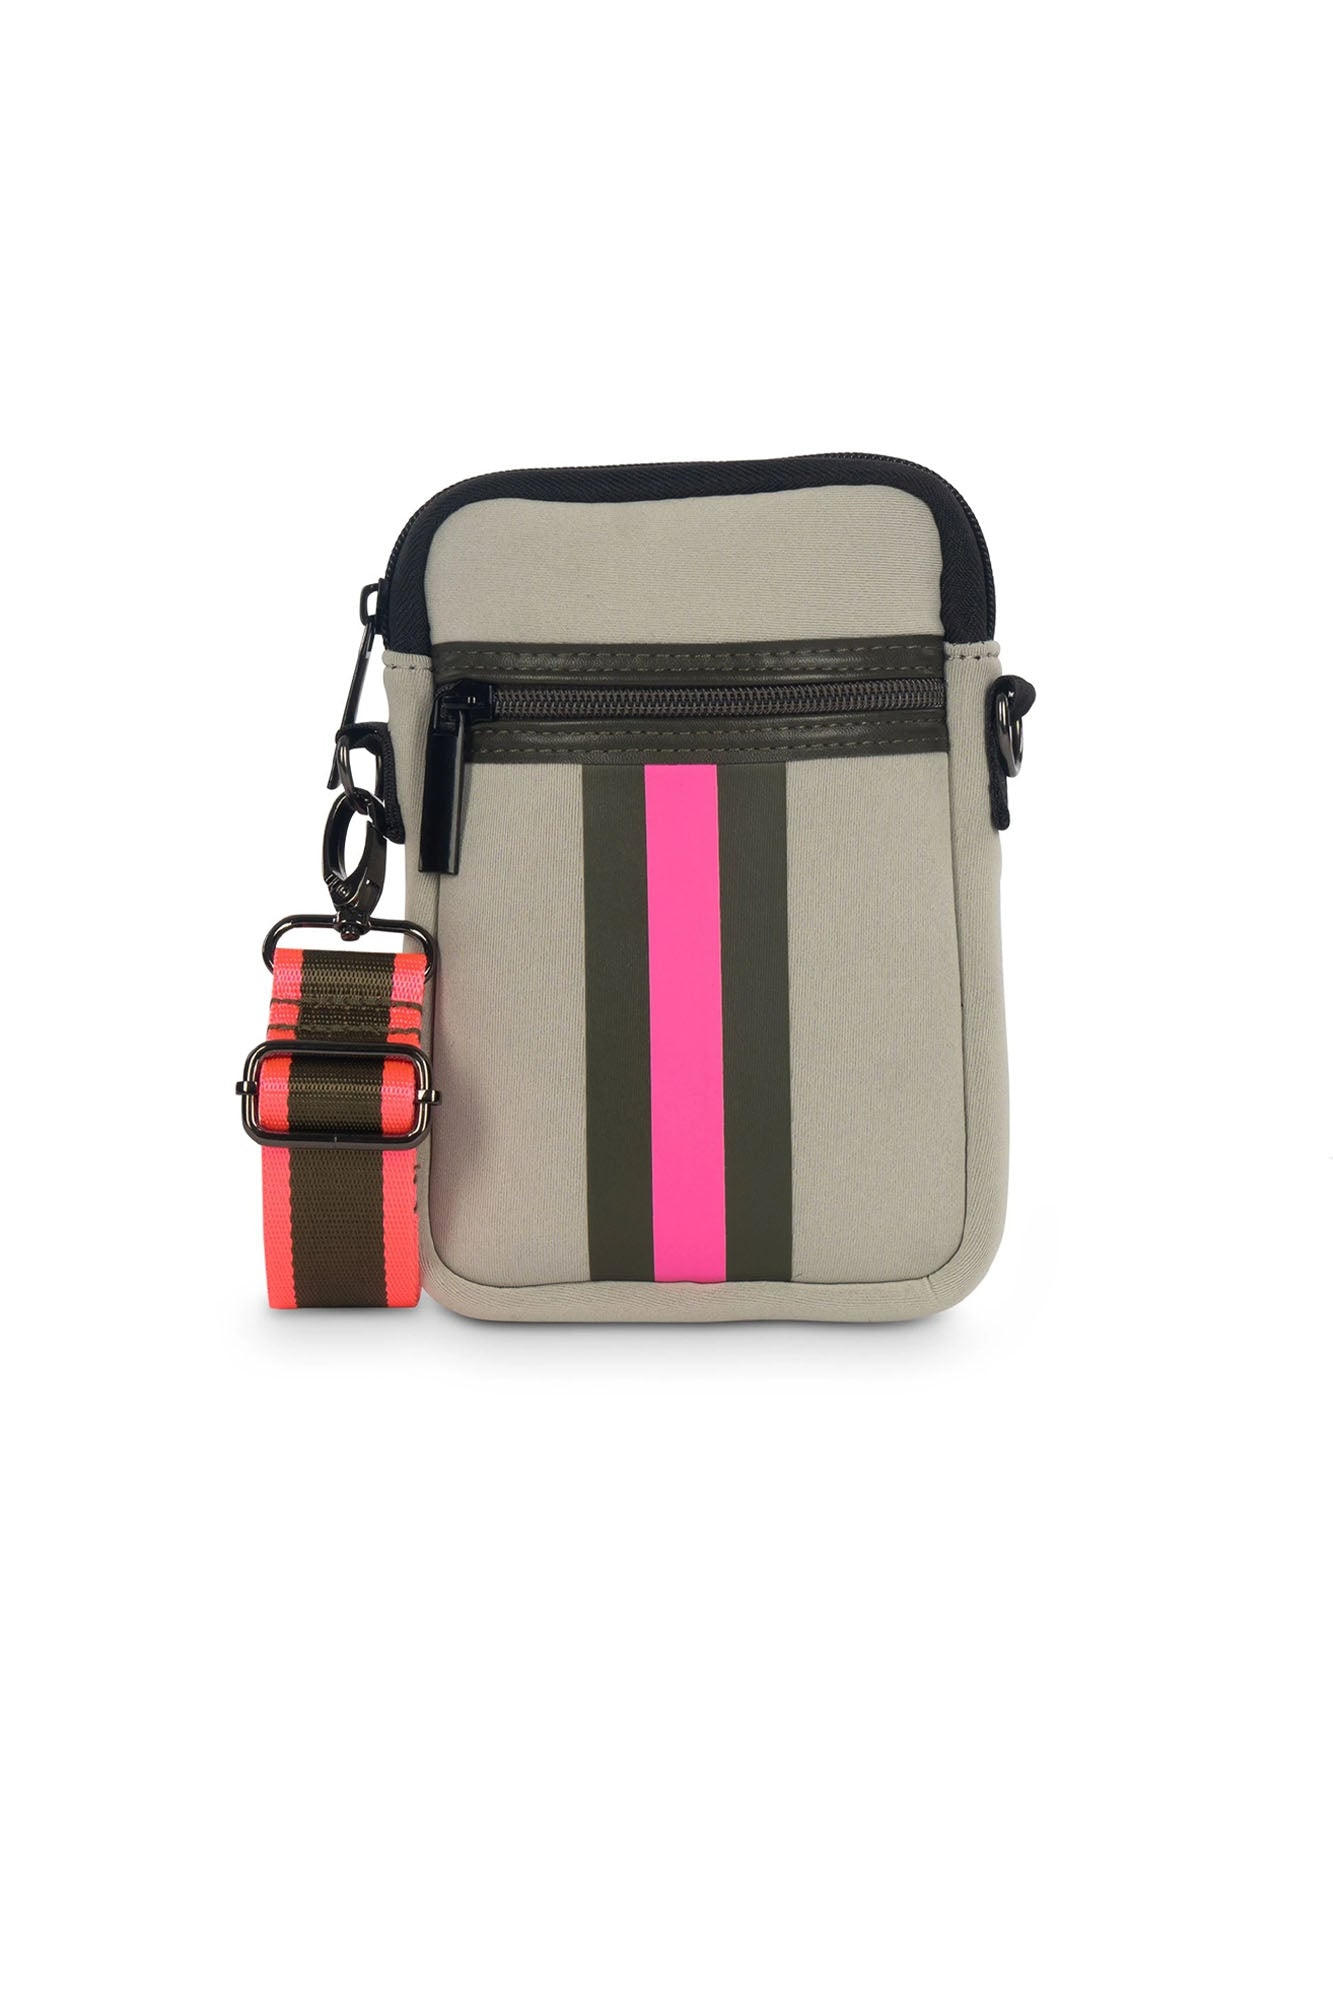 Haute Shore - Casey Swank Neoprene Cell Phone Case (CASEY, Putty w/Army & Hot Pink Stripe)